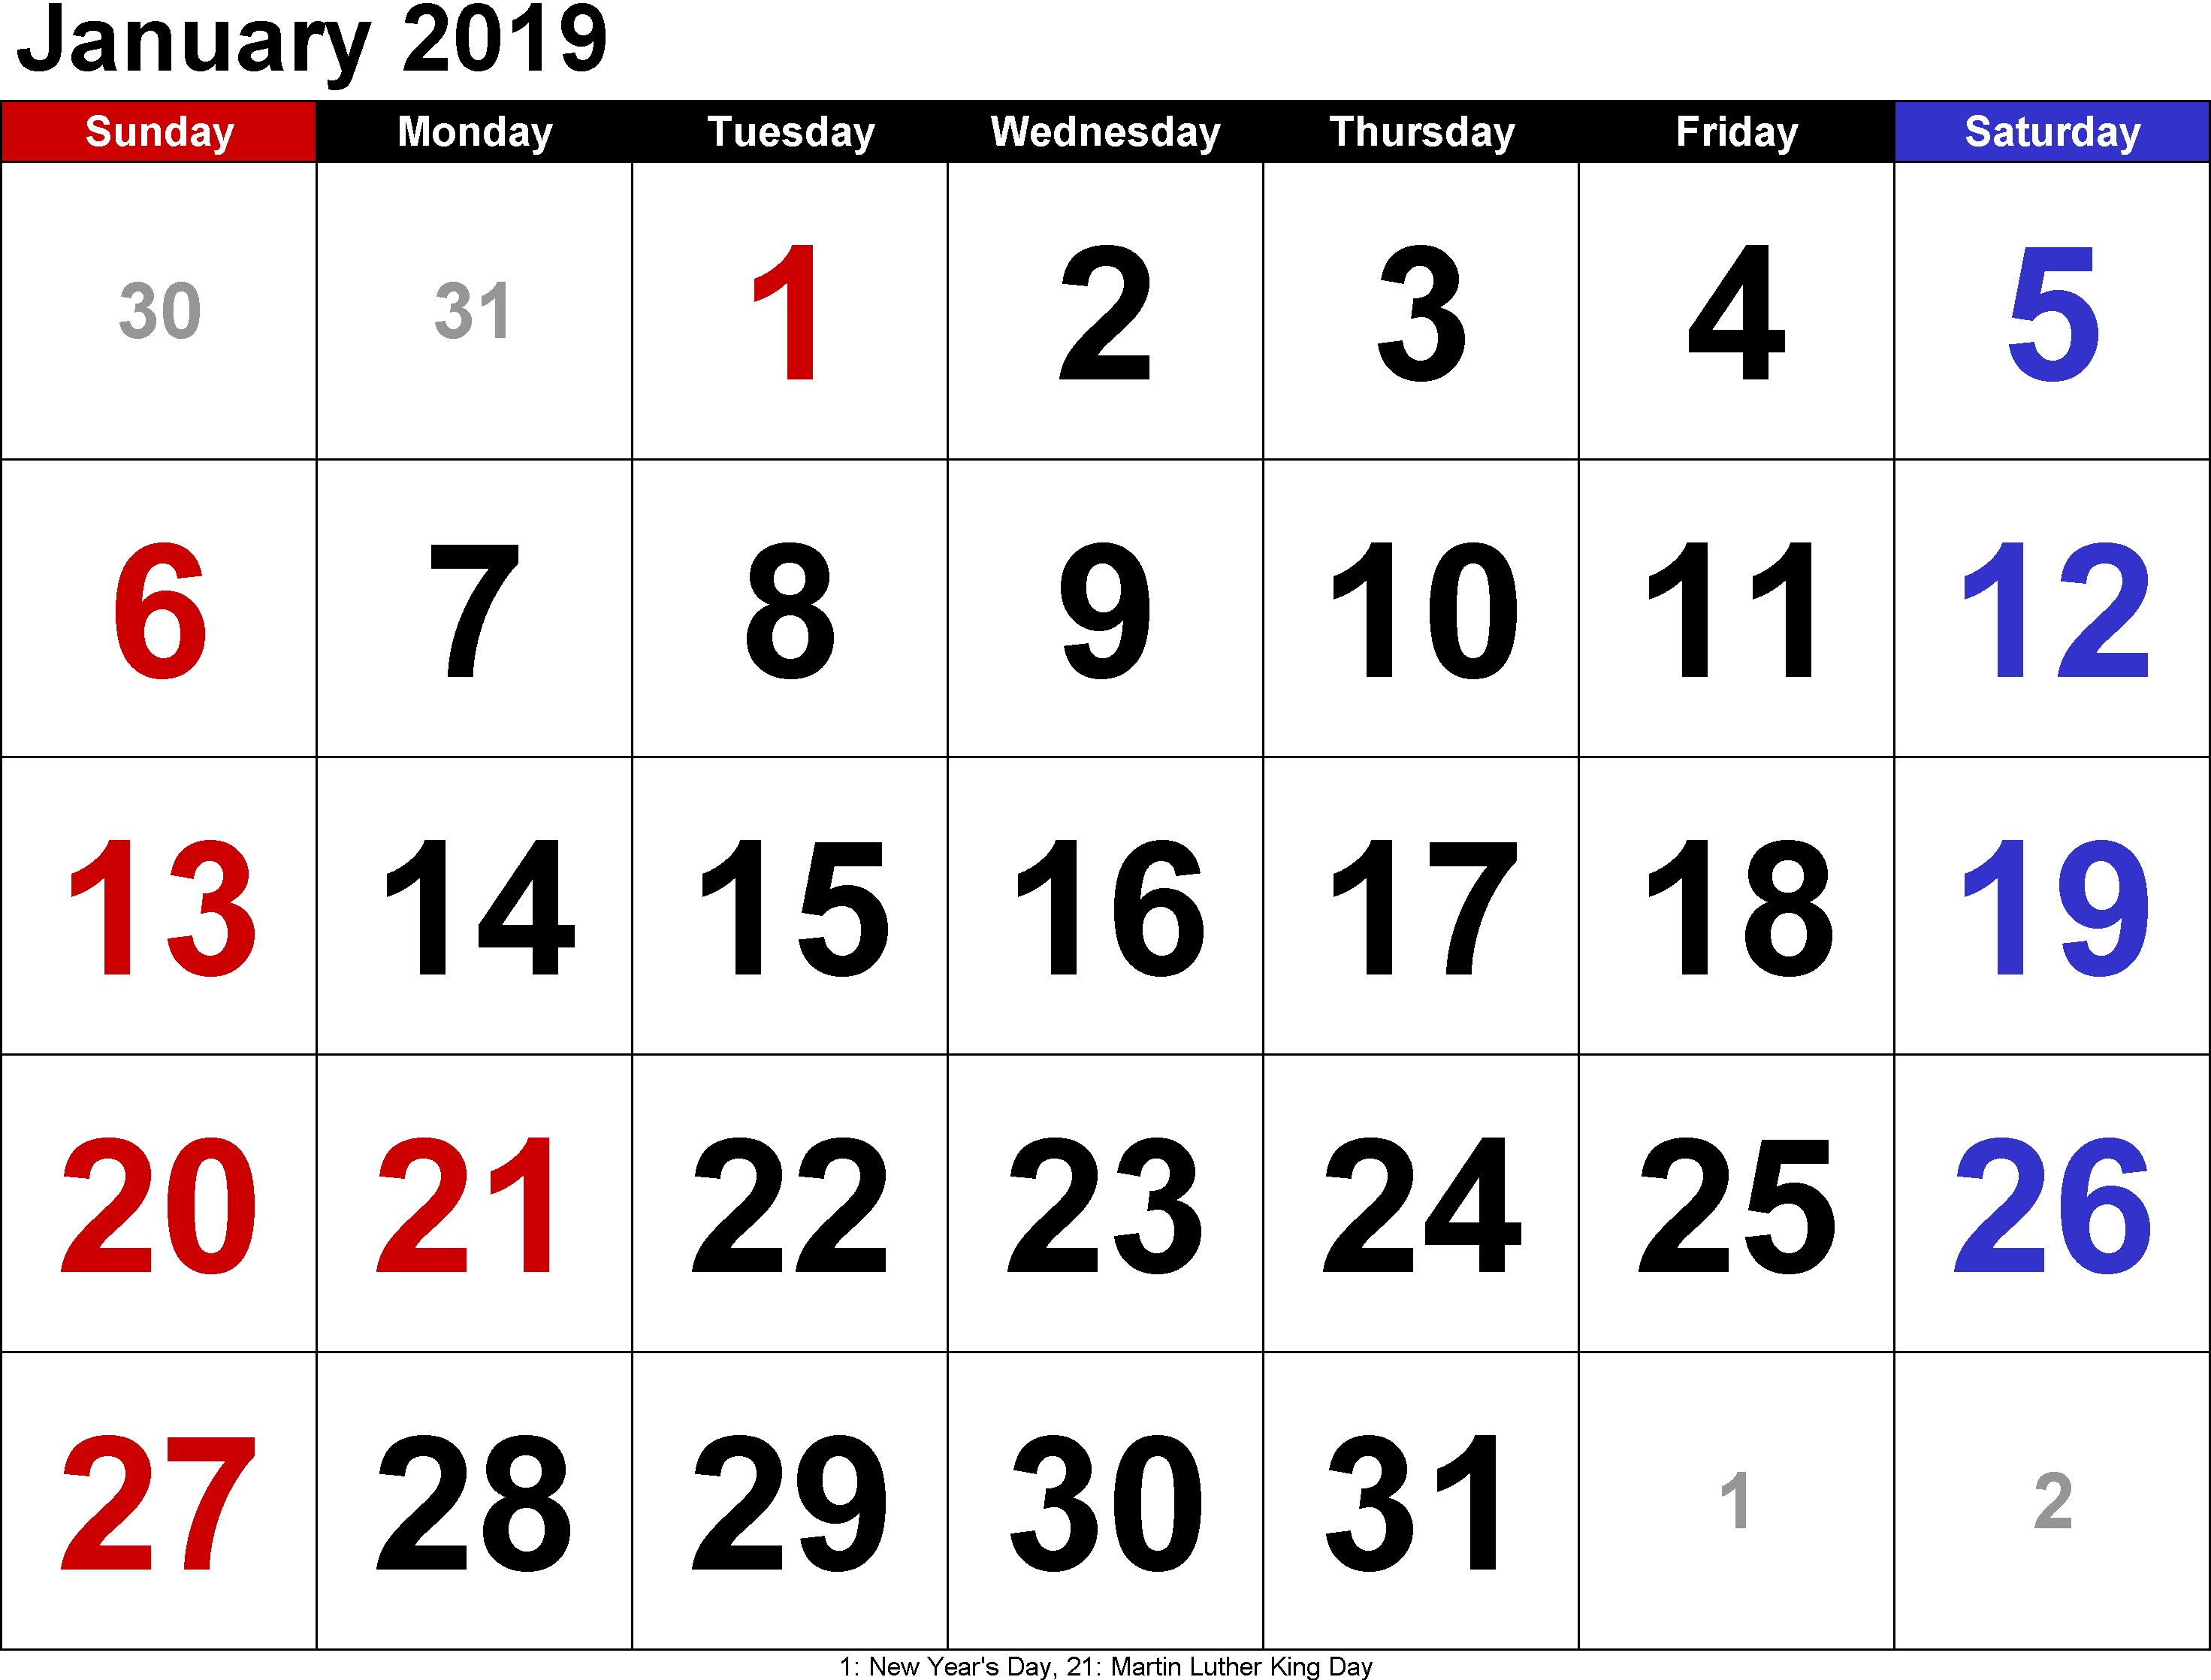 january 2019 calendar january 2019 calendar printable january 2019 calendar template january calendar